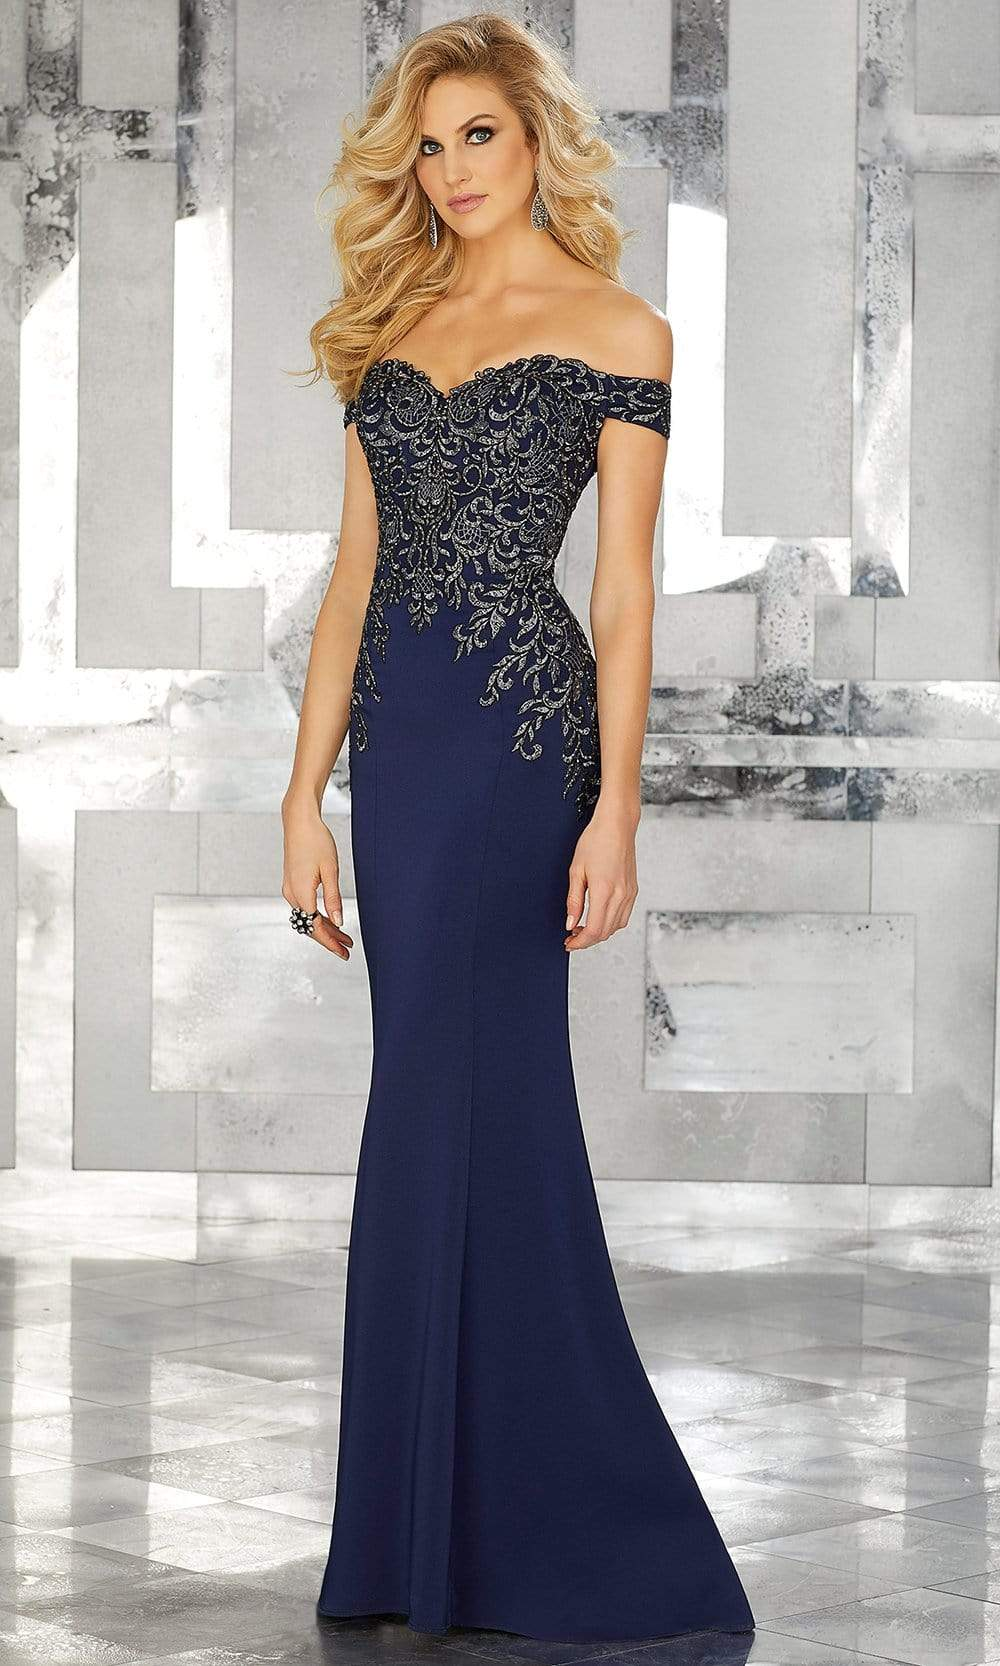 MGNY By Mori Lee - 71616 Embroidered Off-Shoulder Trumpet Dress Evening Dresses 2 / Navy